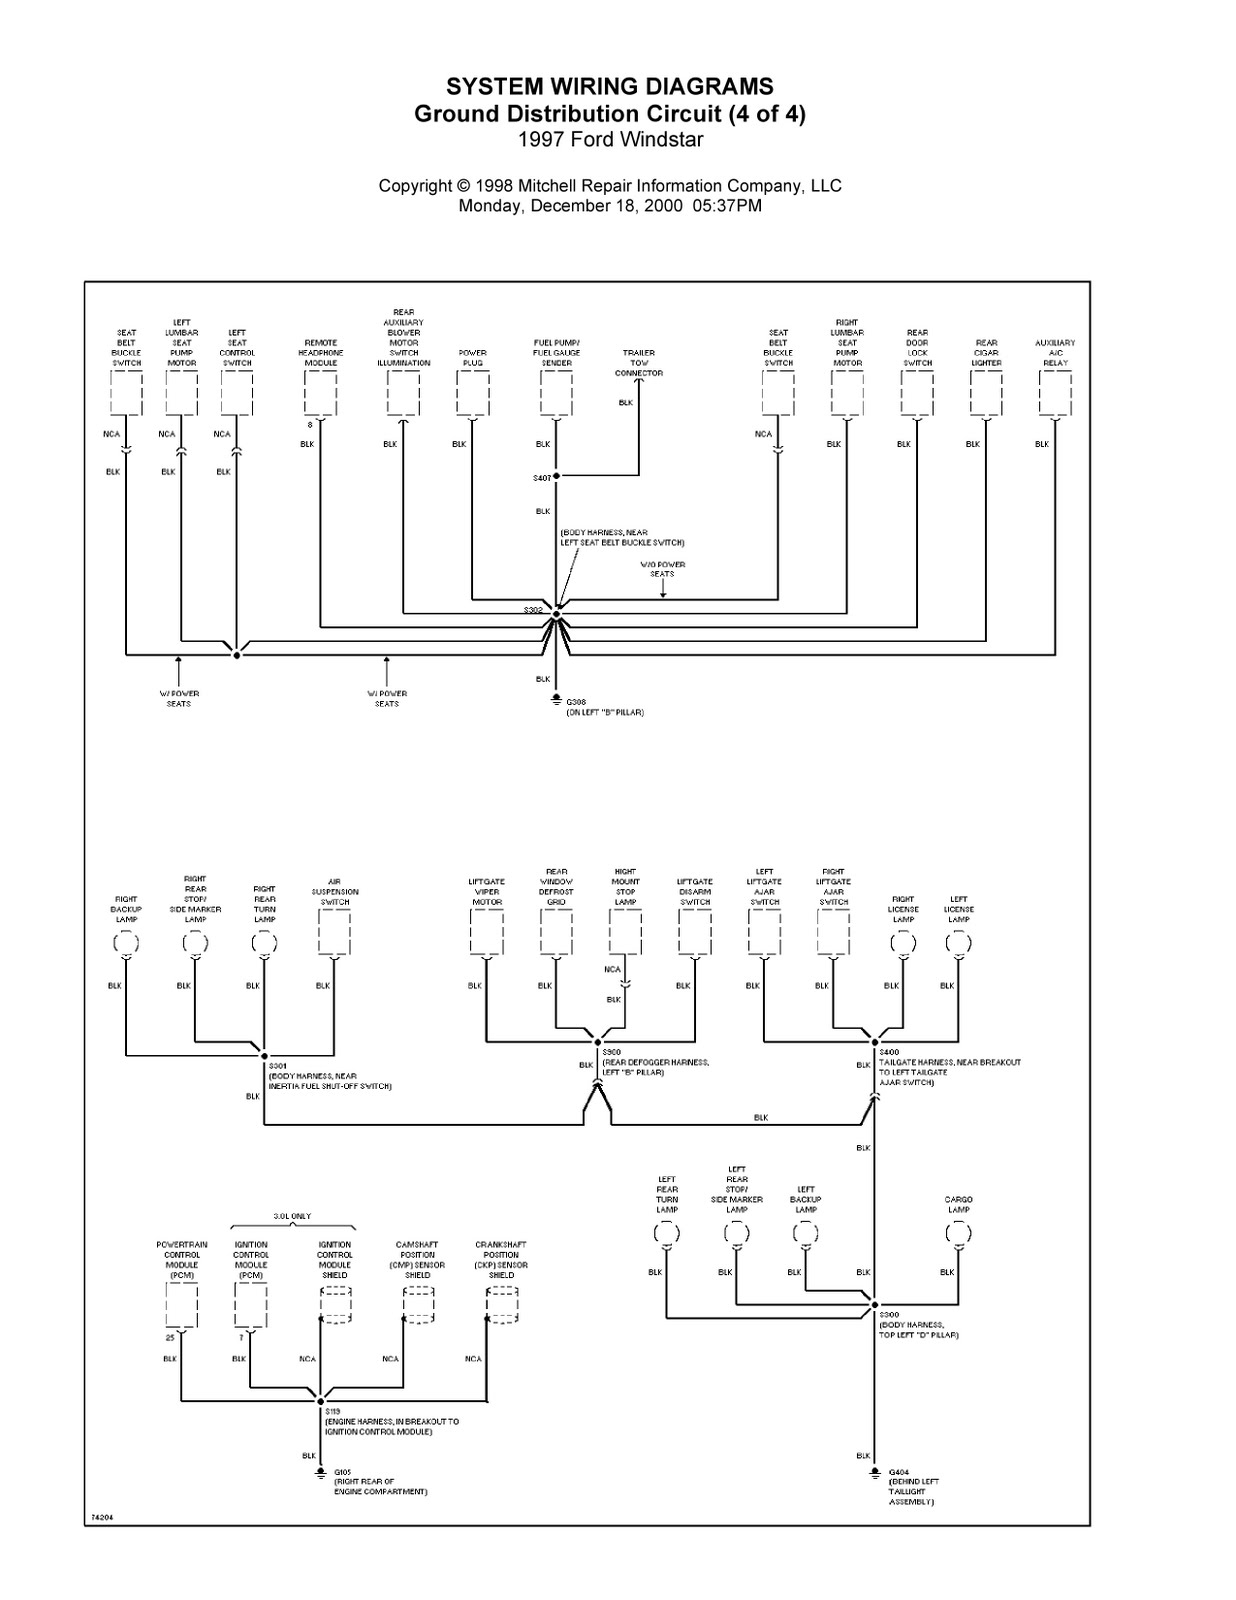 2001 ford windstar wiring harness wiring library2000 ford windstar 3 8 engine exploded view 2000 free [ 1236 x 1600 Pixel ]